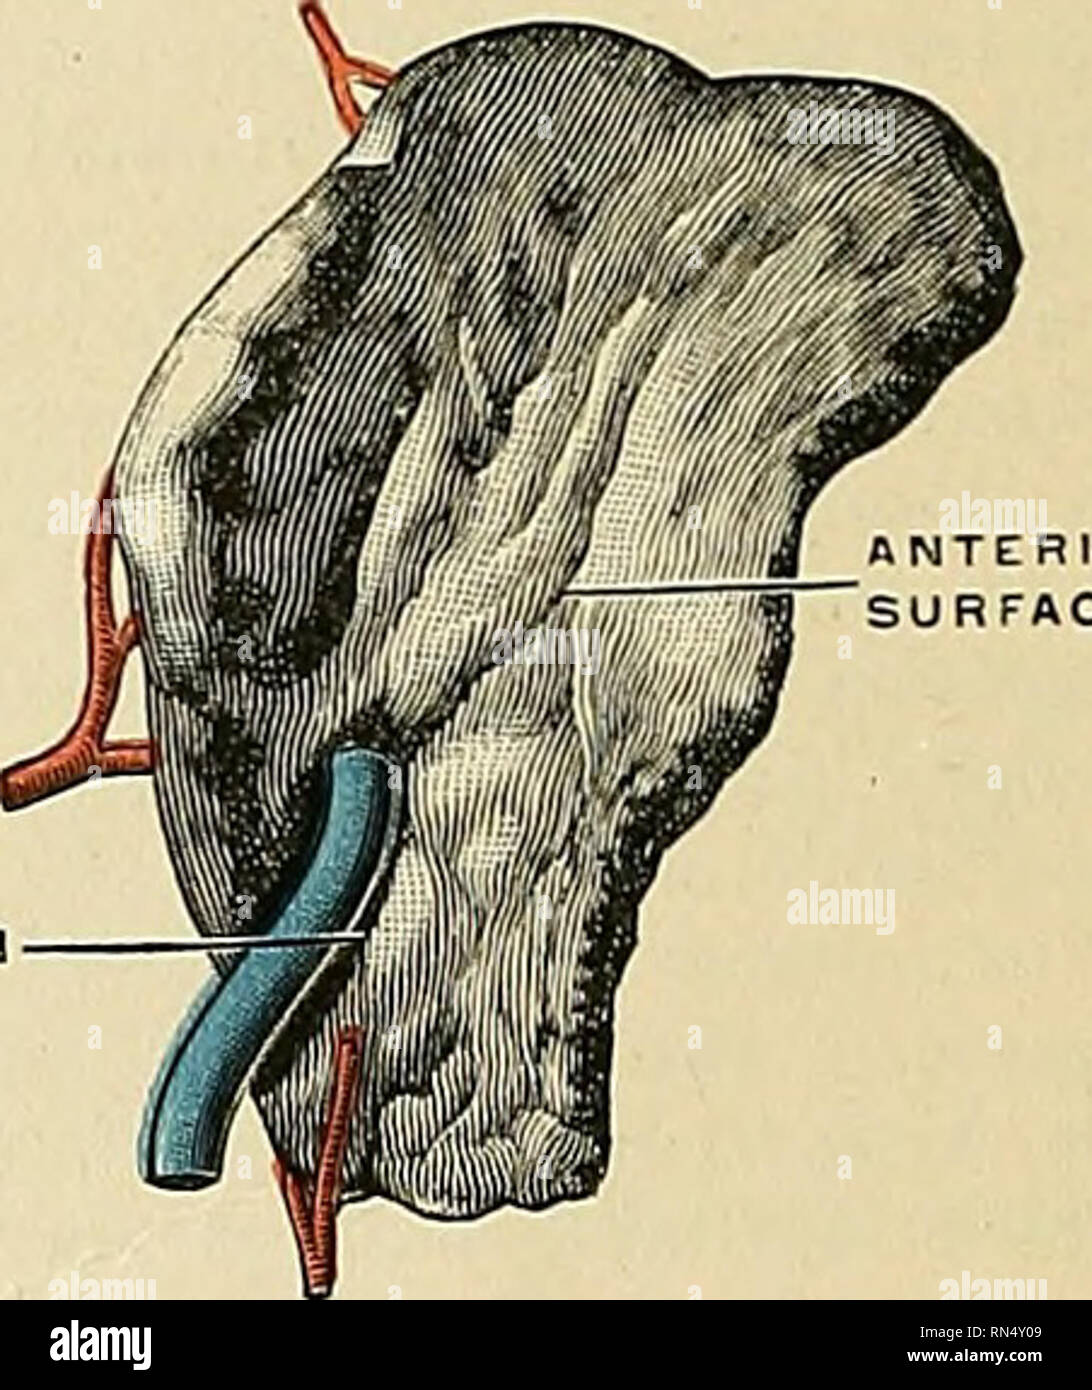 anatomy, descriptive and applied  anatomy  1448 the ductless glands whole  surface, is situated above and internally